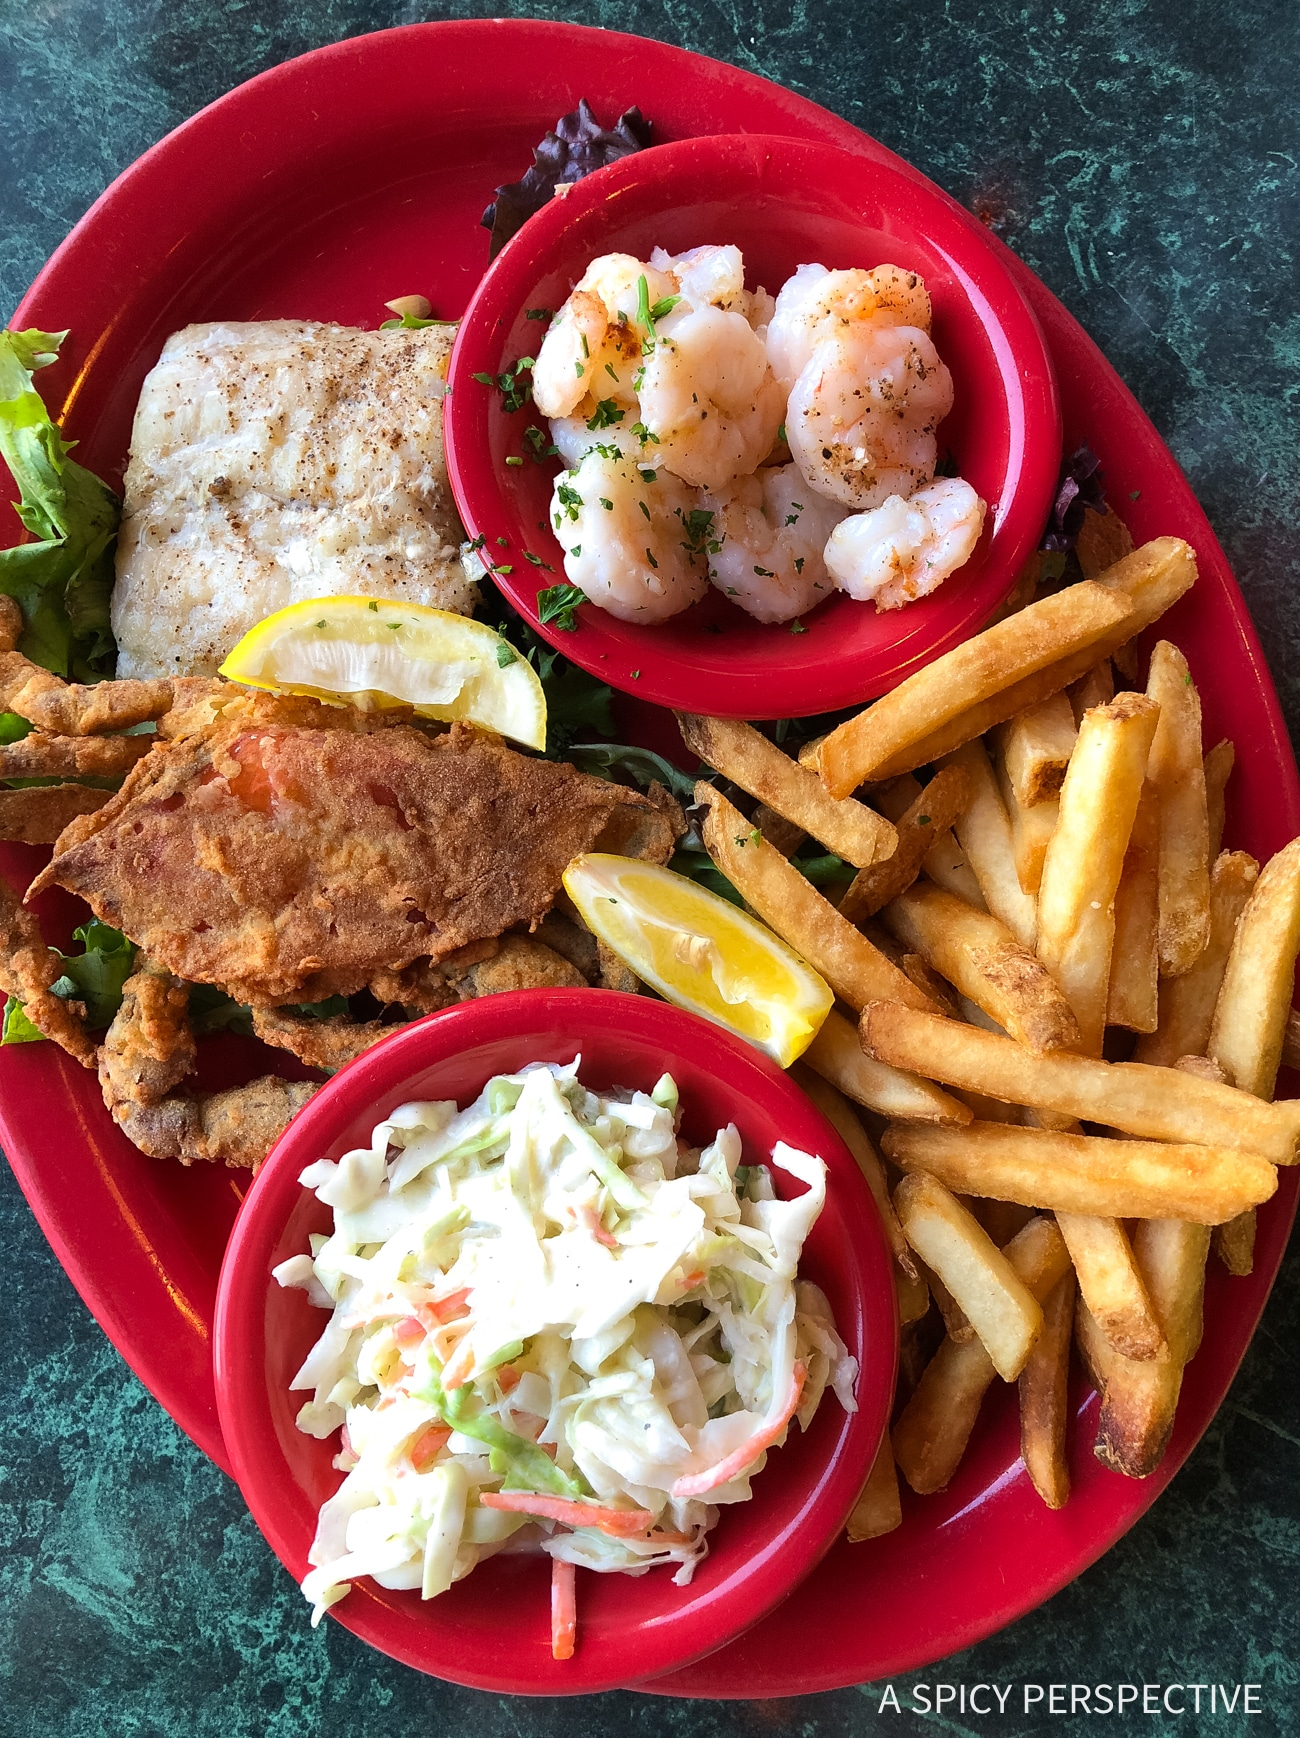 Seafood Platter - Why You Should Visit The Crystal Coast Outer Banks NC (Emerald Isle Vacation Travel Tips!)